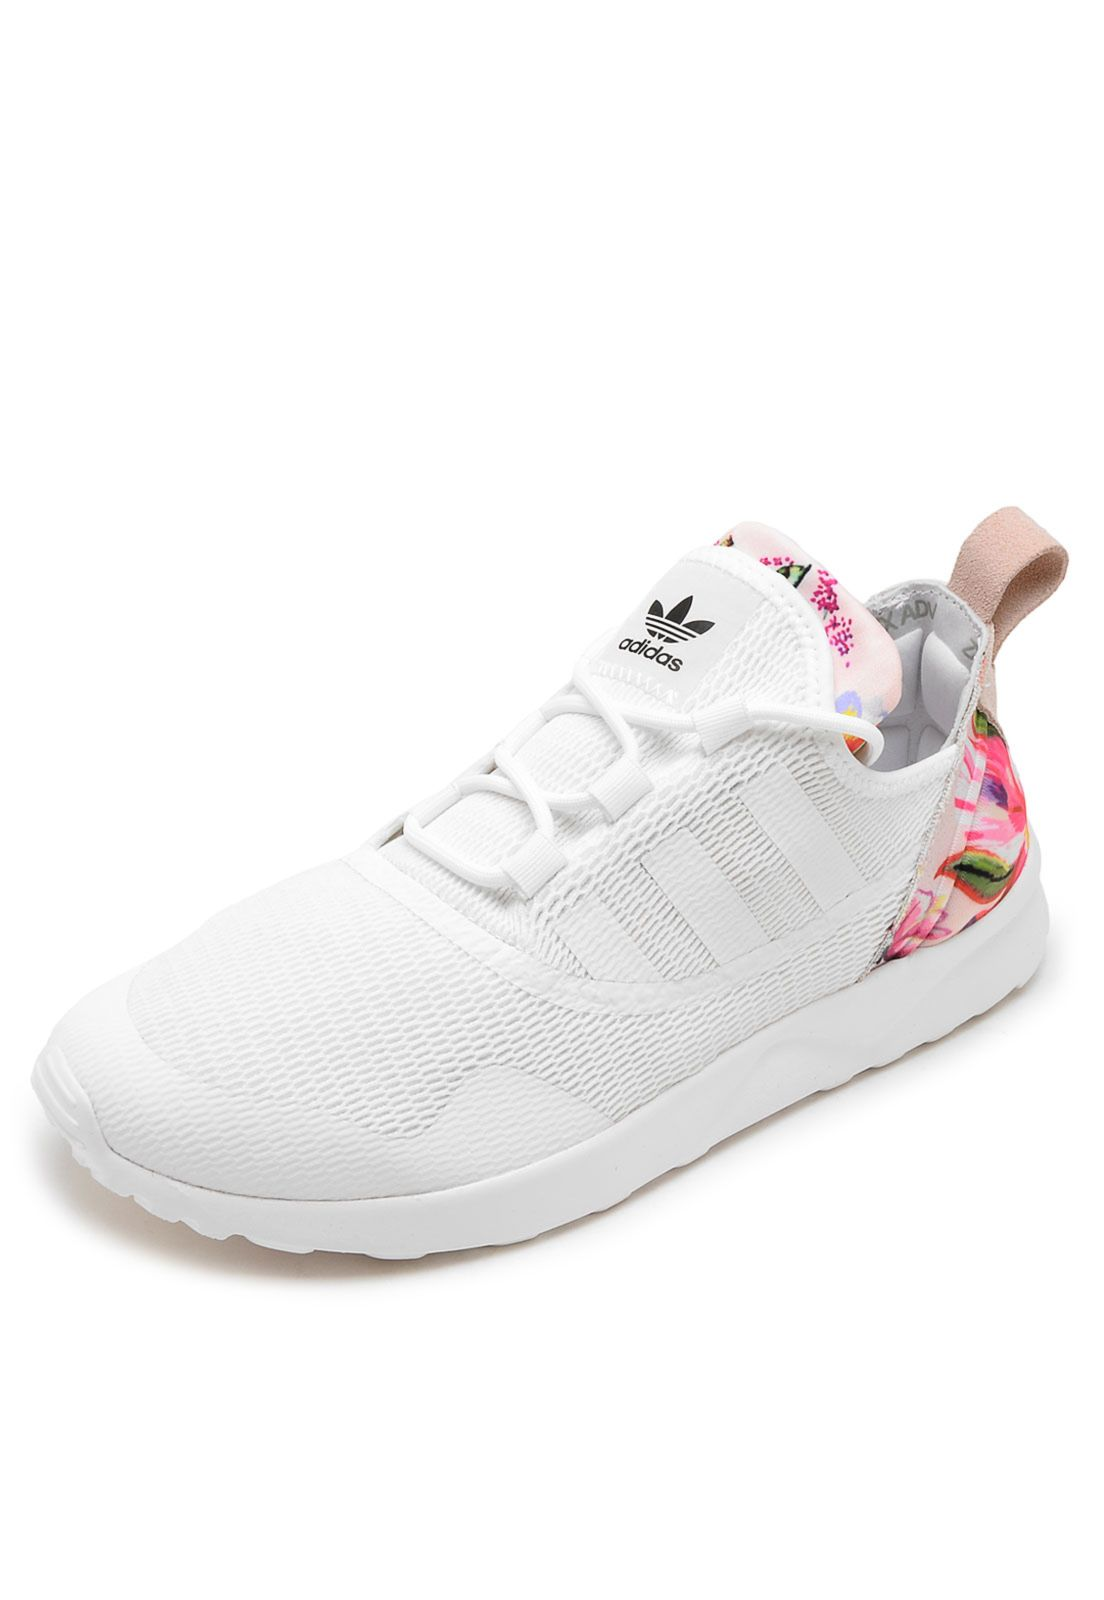 aab5b248d Tênis adidas Originals Farm ZX Flux ADV Virtue Branco - Marca adidas  Originals